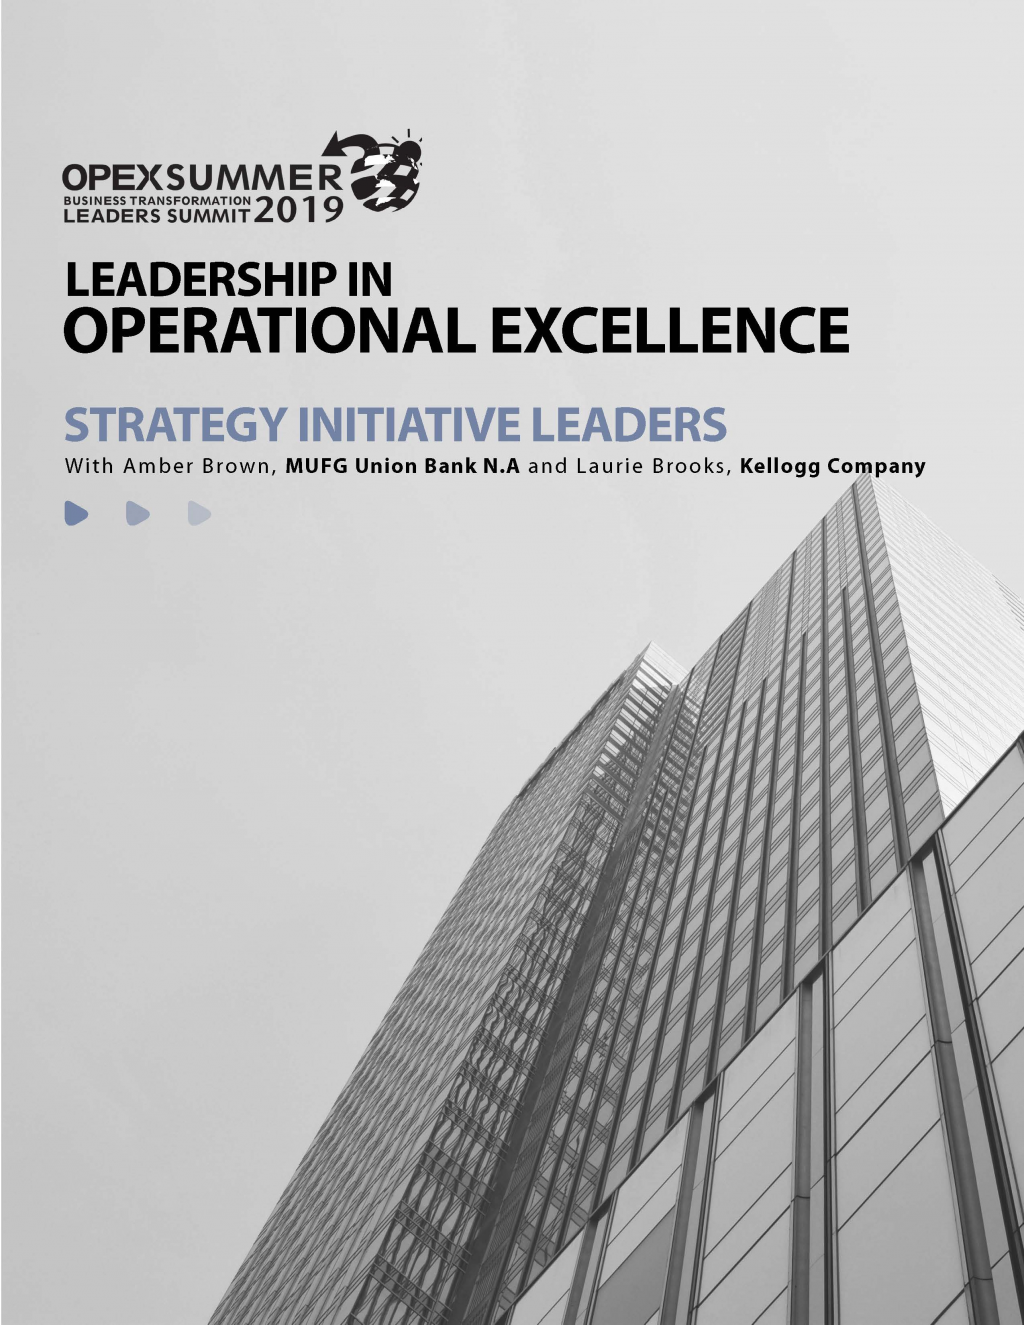 Leadership in OPEX: Strategy Initiative Leaders at OPEX Summer